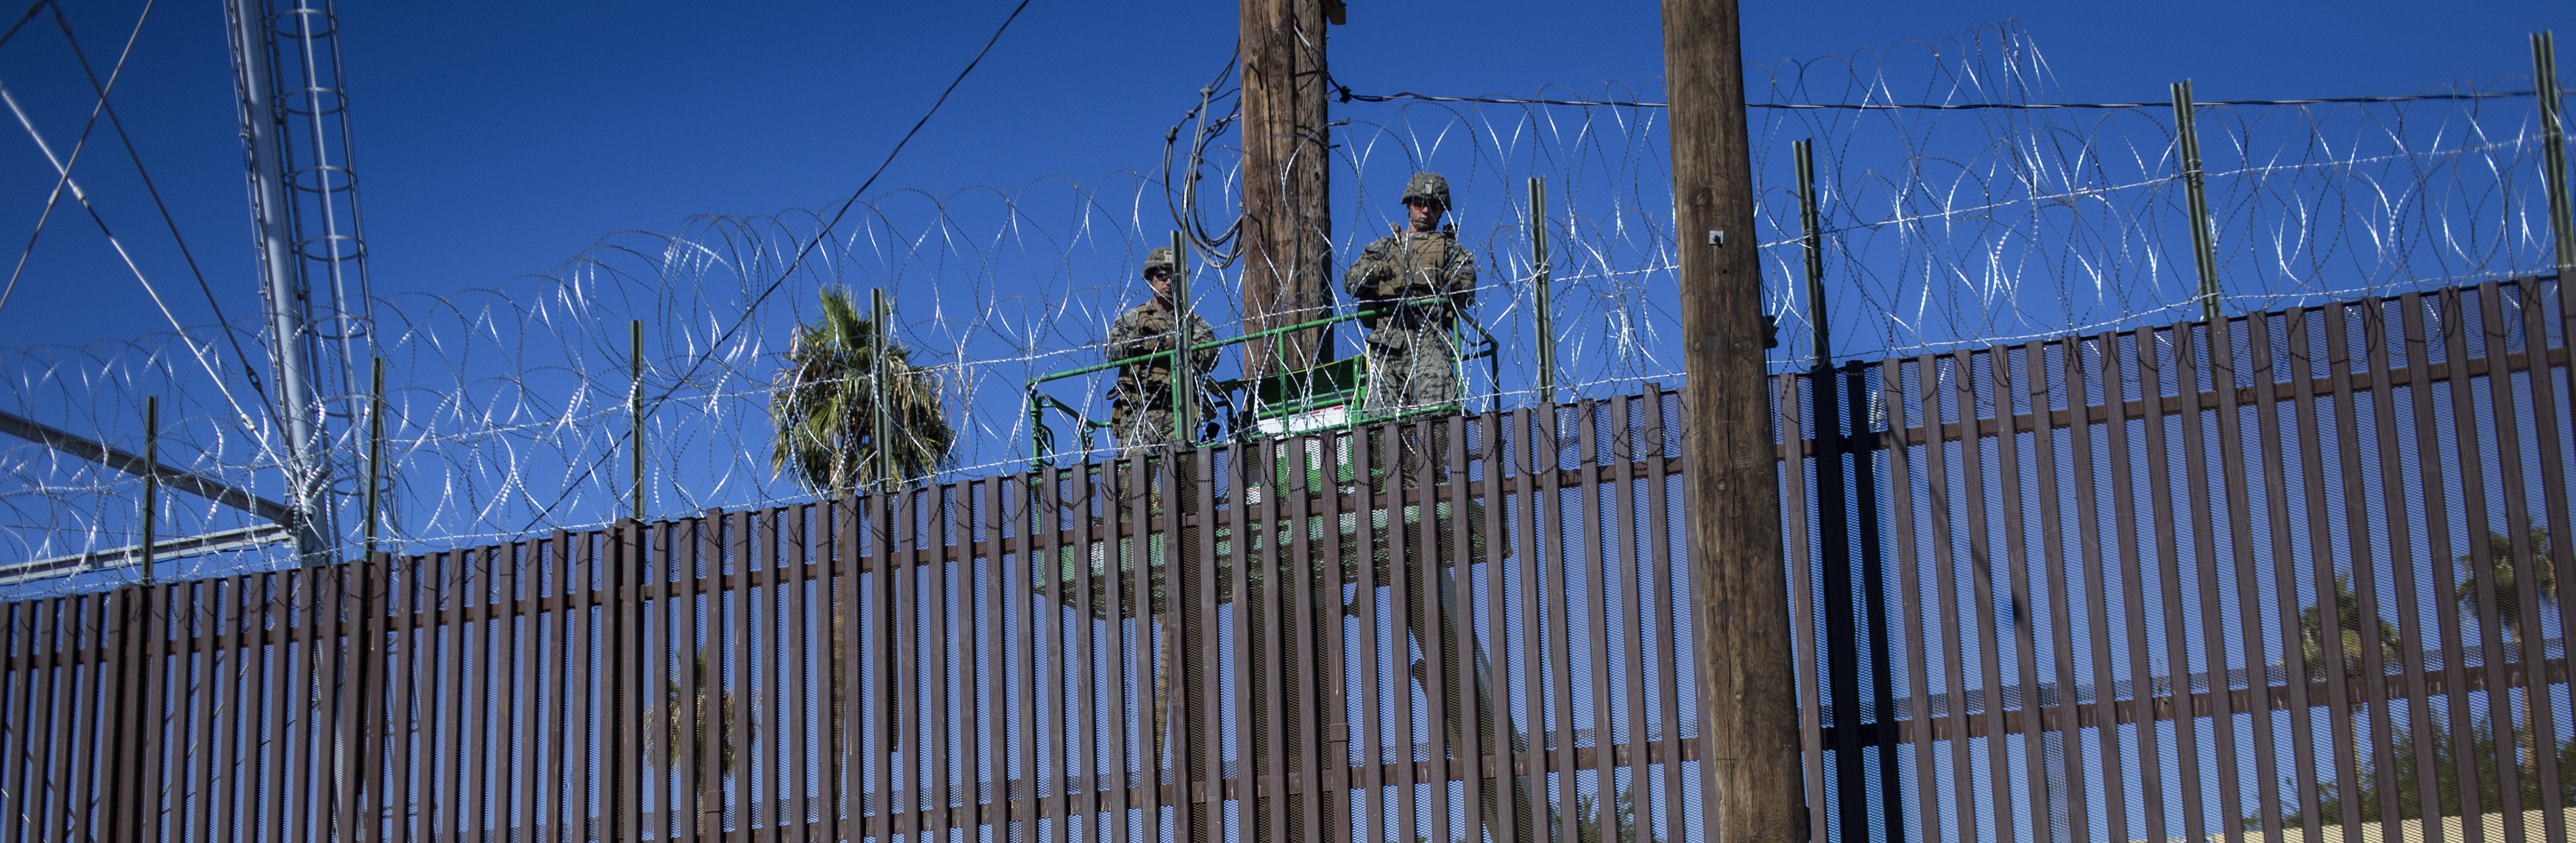 Trump's Plan to Have the Military Build a Wall is Illegal